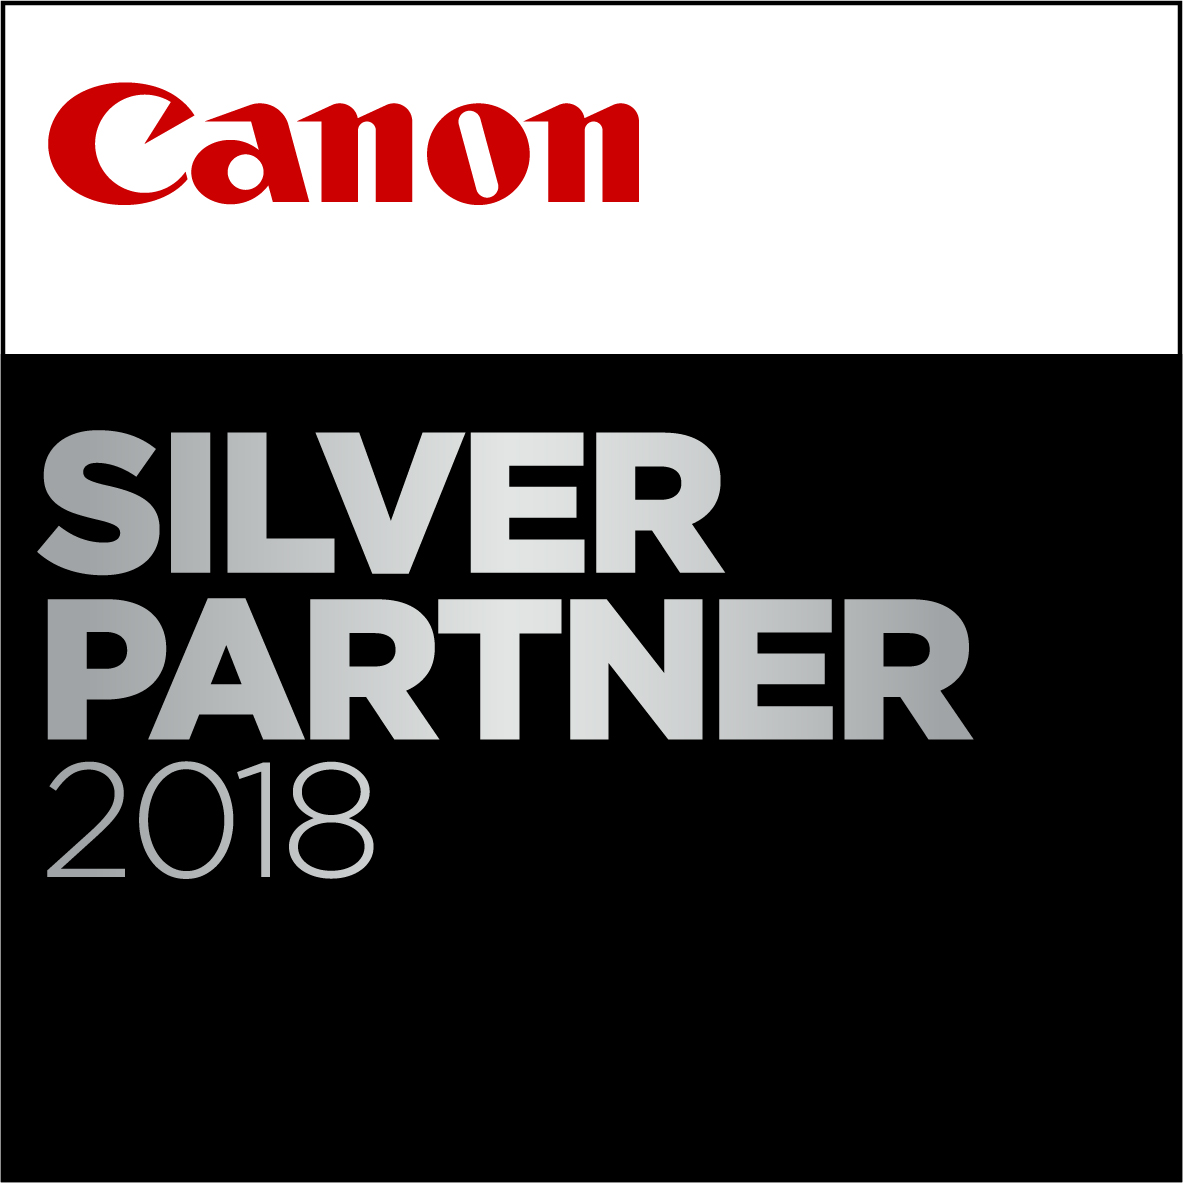 Canon_PP 2018_SilverPartner_Sticker visual